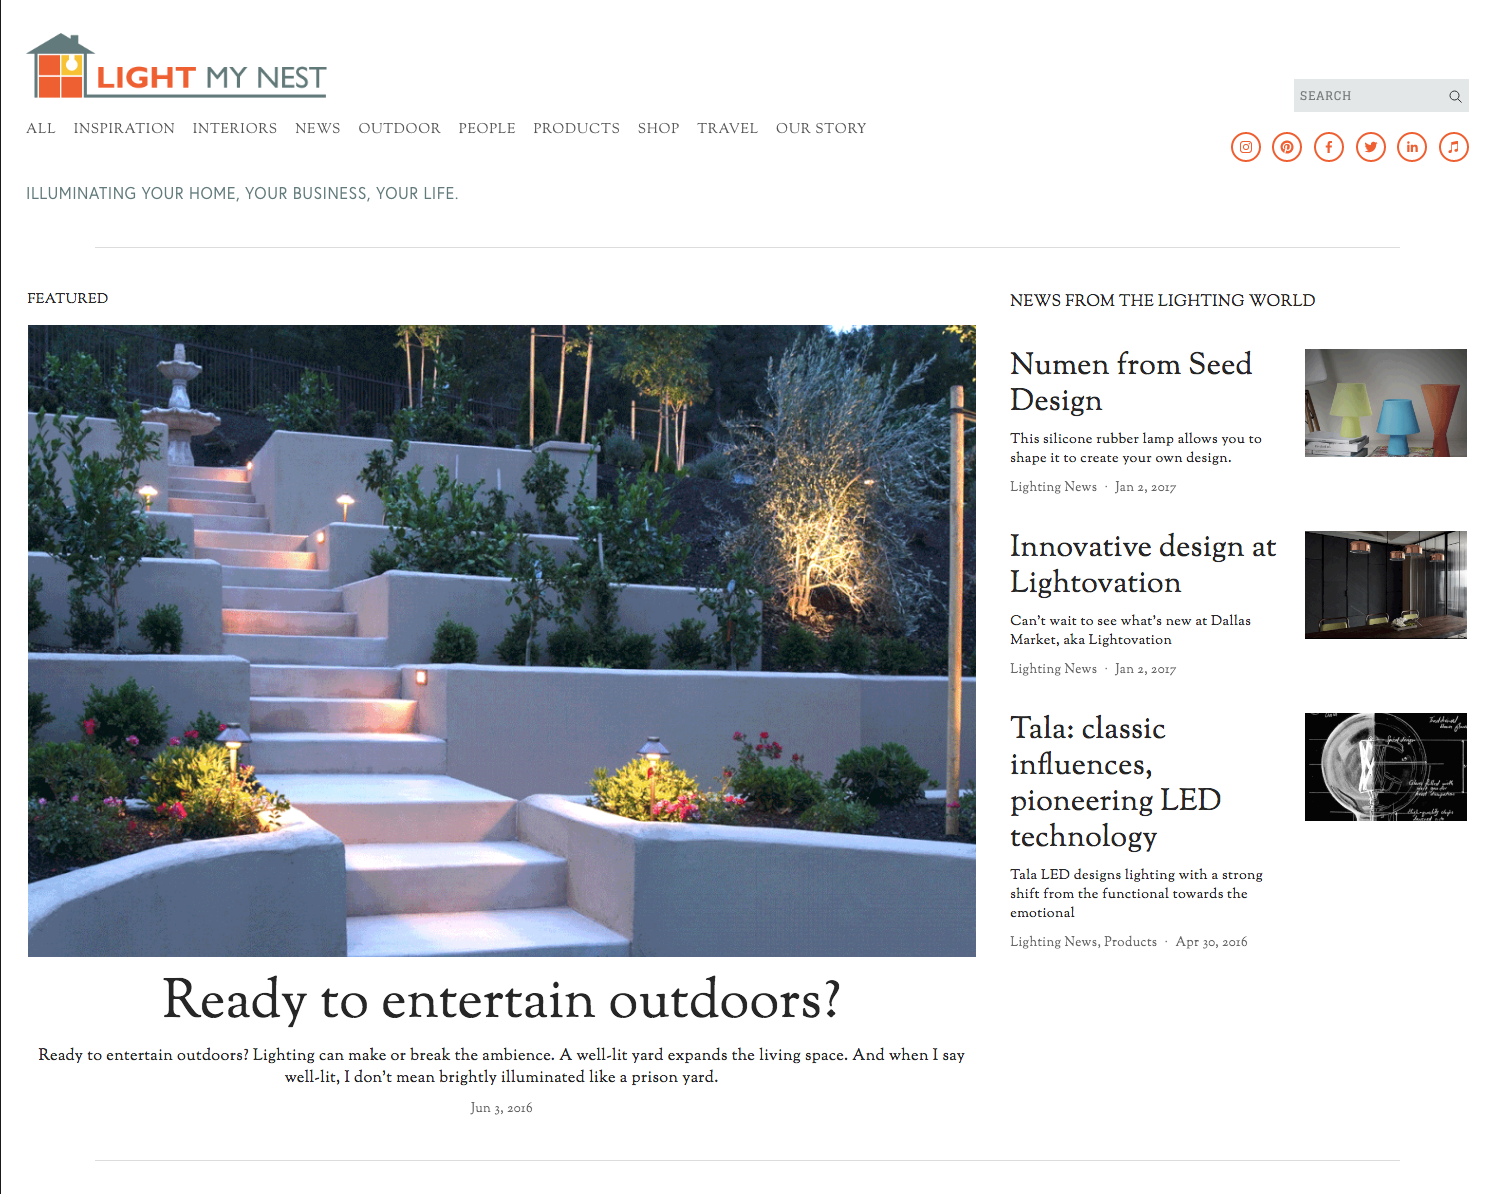 Santa Fe based lighting connoisseur Lette Birn's passion for lighting, design and education was the driving force behind her blog, Light My Nest. She needed a contemporary, clean design to showcase the breadth of her experience in the lighting industry.